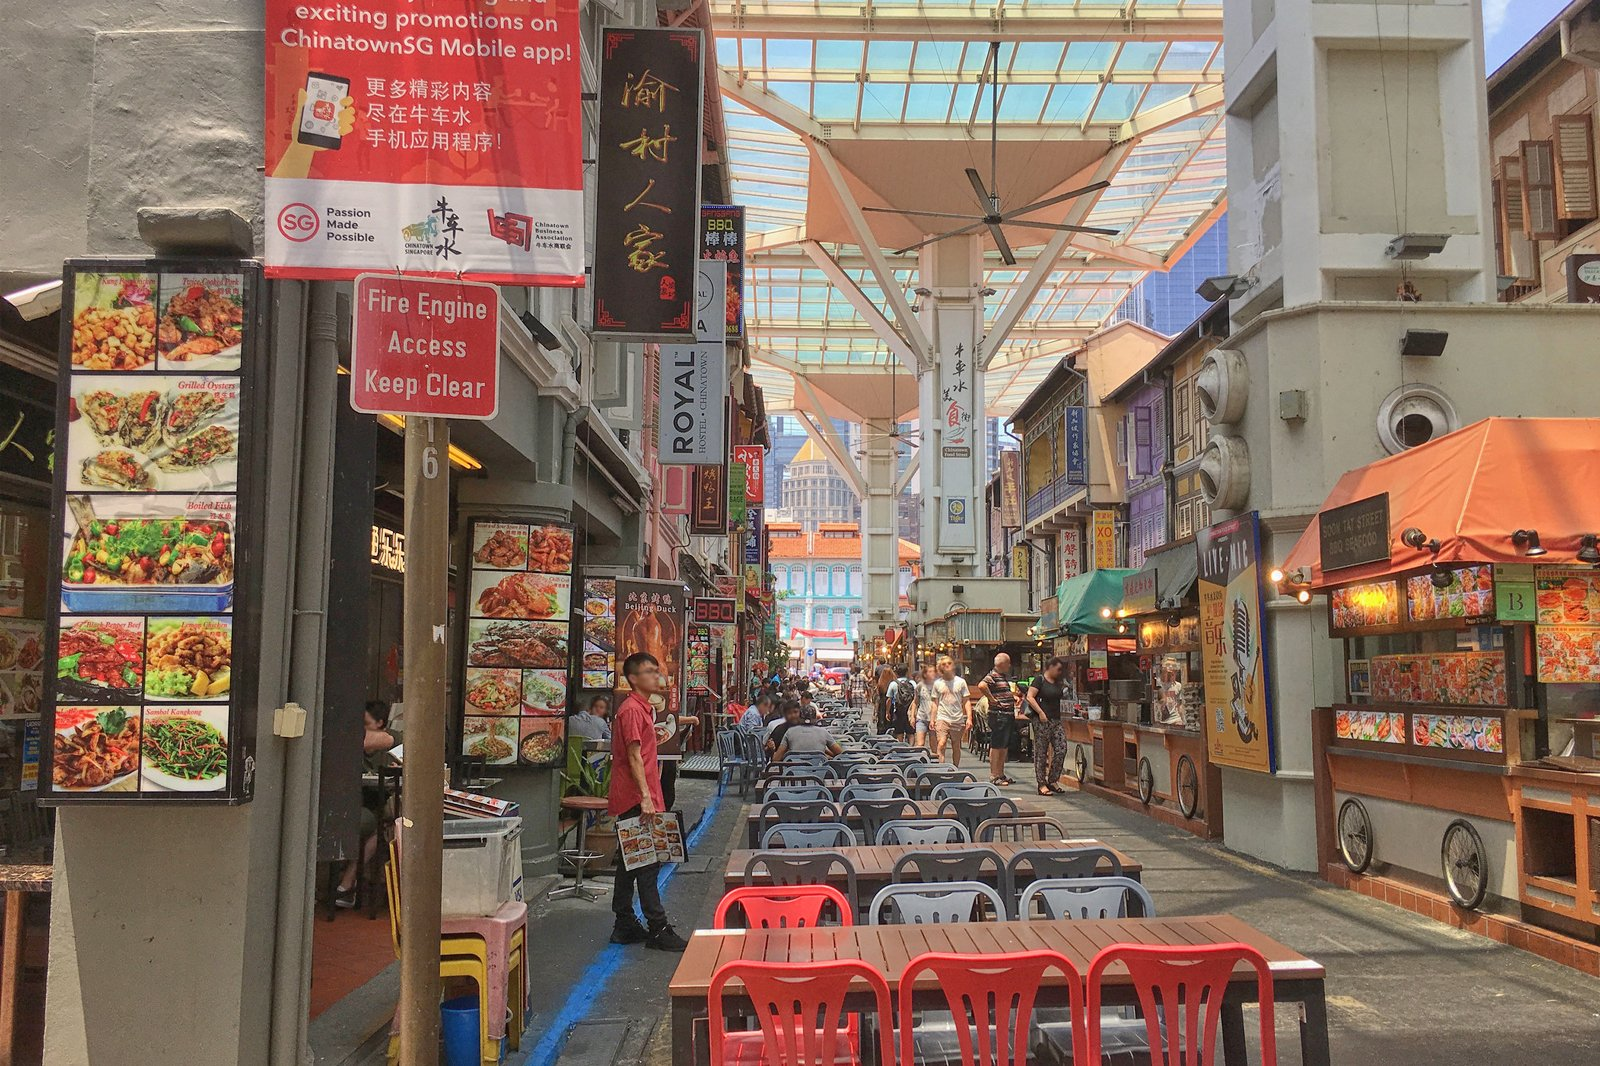 Chinatown Food Street in Singapore - Famous Hawker Center on Smith Street, Singapore – Go Guides